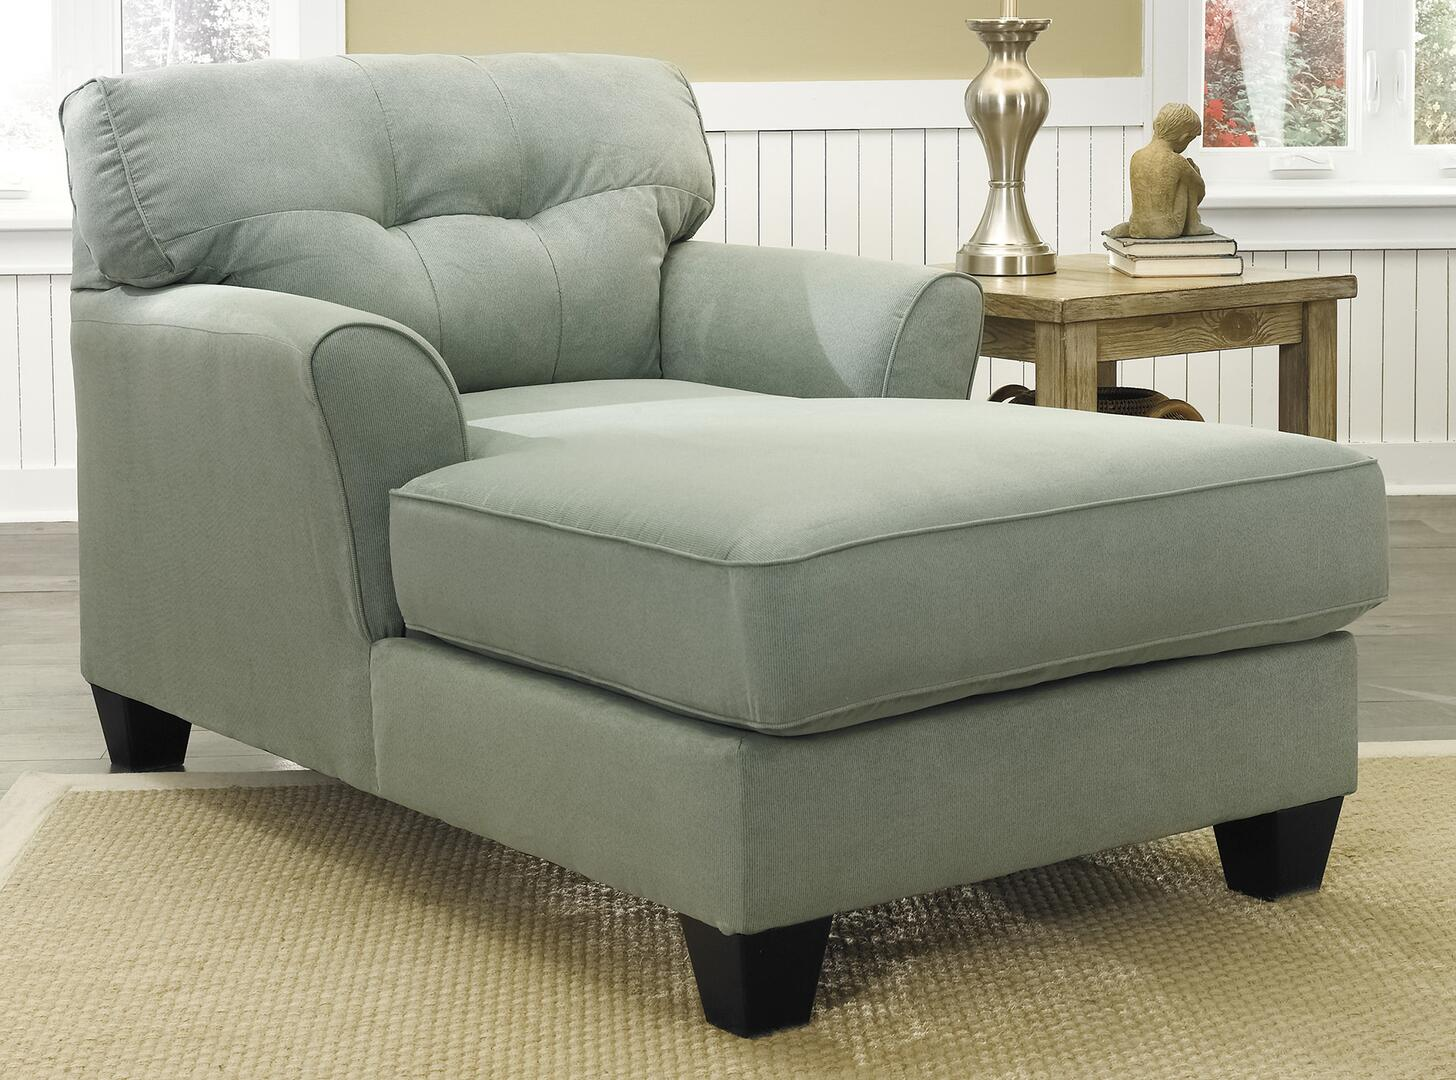 Signature design by ashley 6640015 kylee series for Ashley kylee chaise